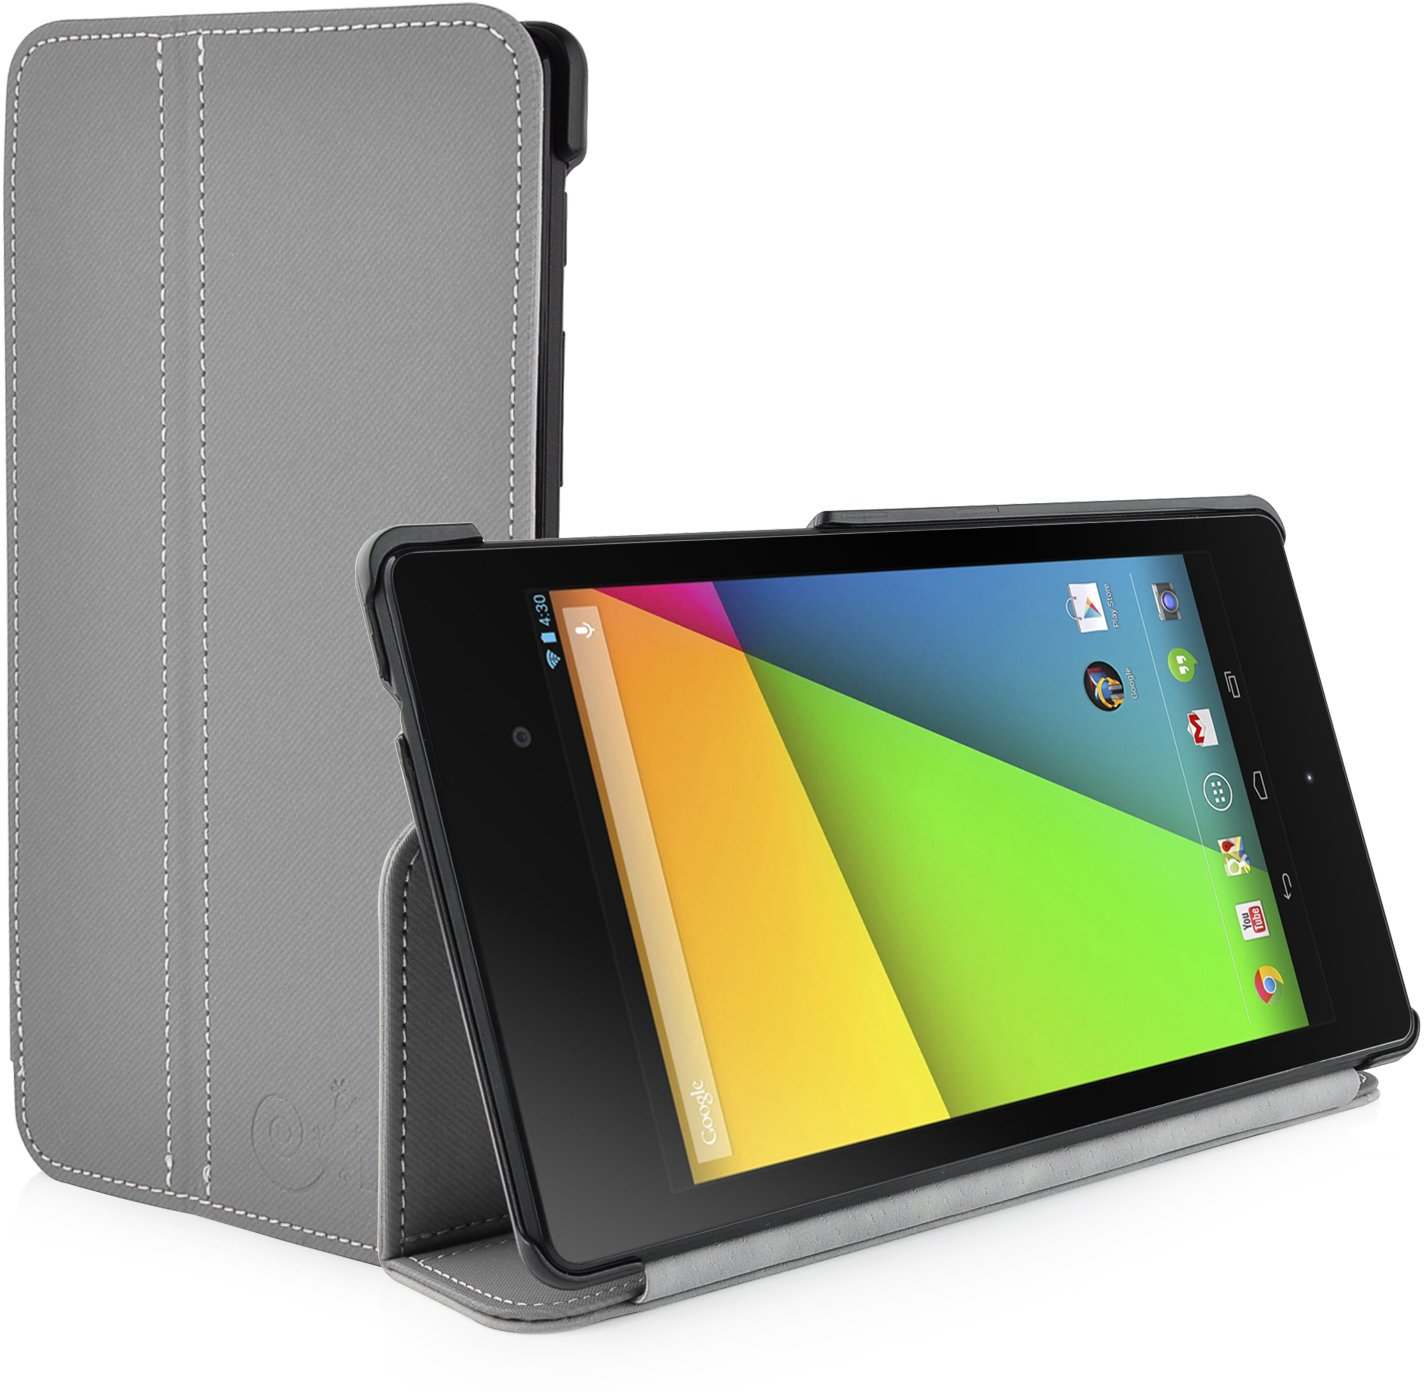 ViTA Grey Ultra Slim Full Body Smart Case for The New Nexus 7 2013 (2nd Generation) with Full Sleep Wake compatibilityCustomer review and more information